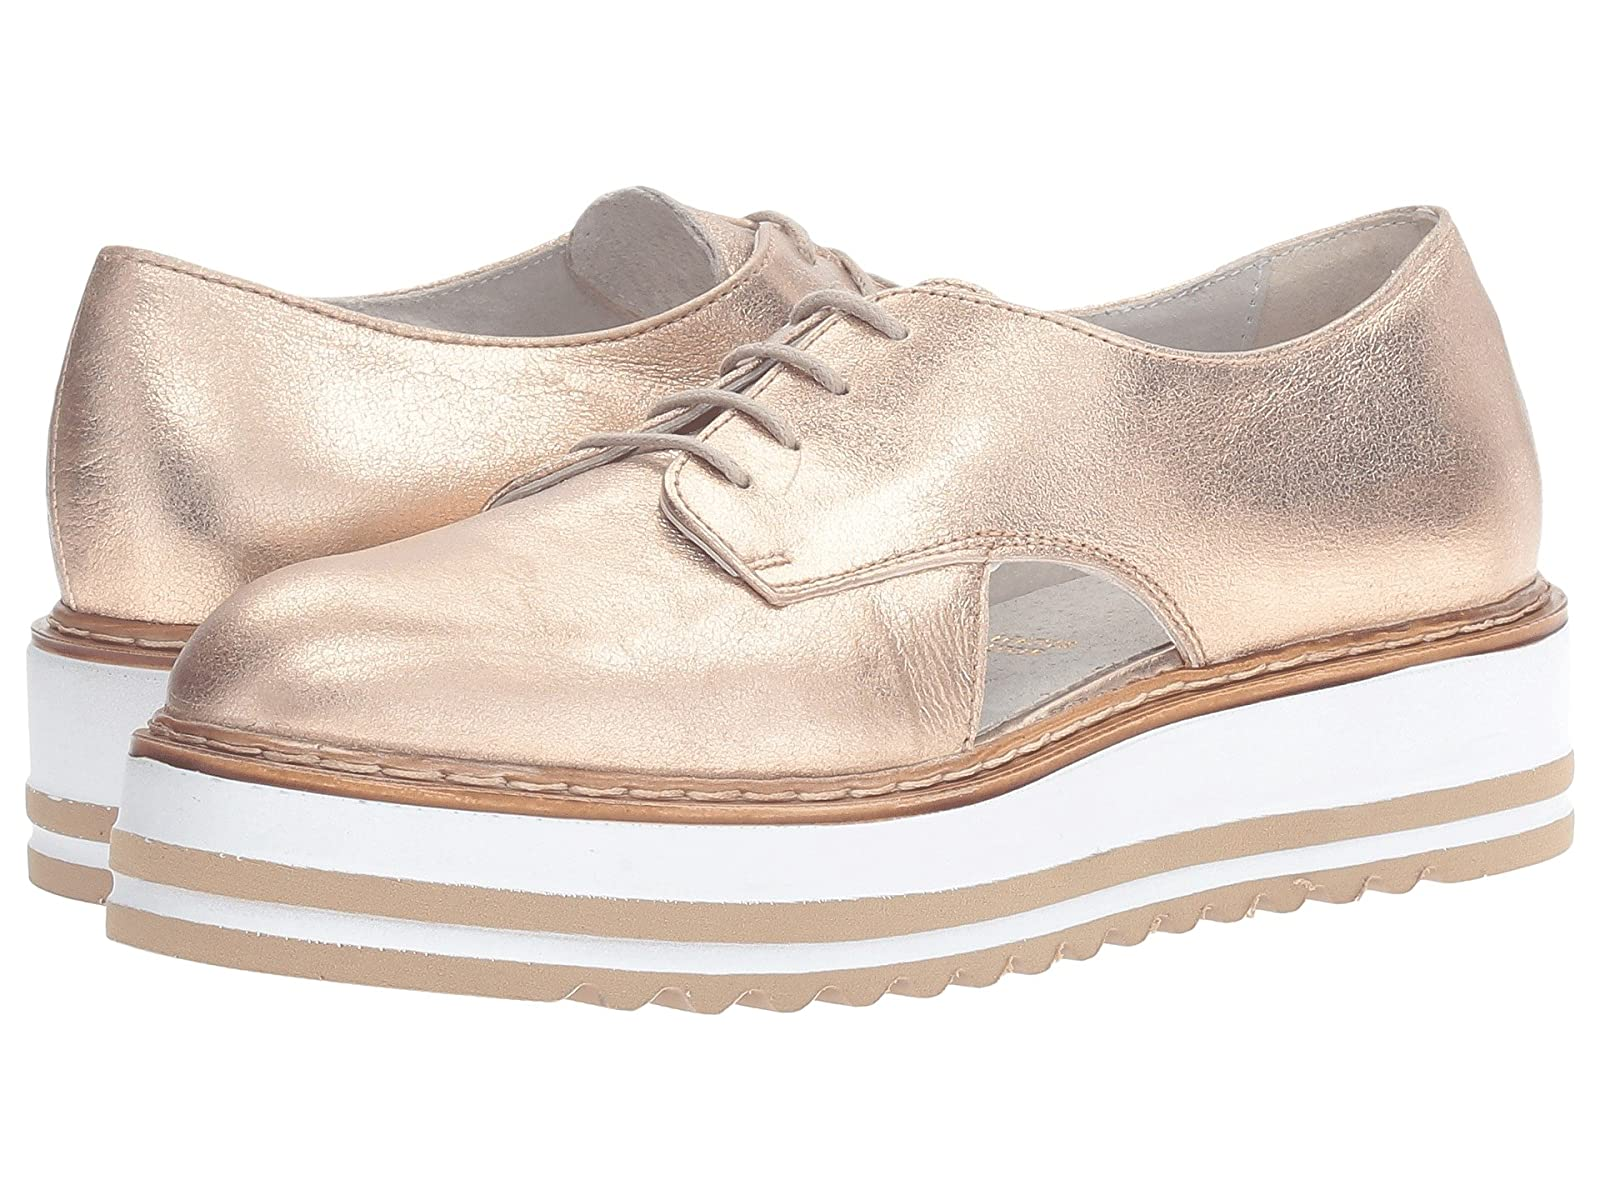 Summit by White Mountain BrodyCheap and distinctive eye-catching shoes